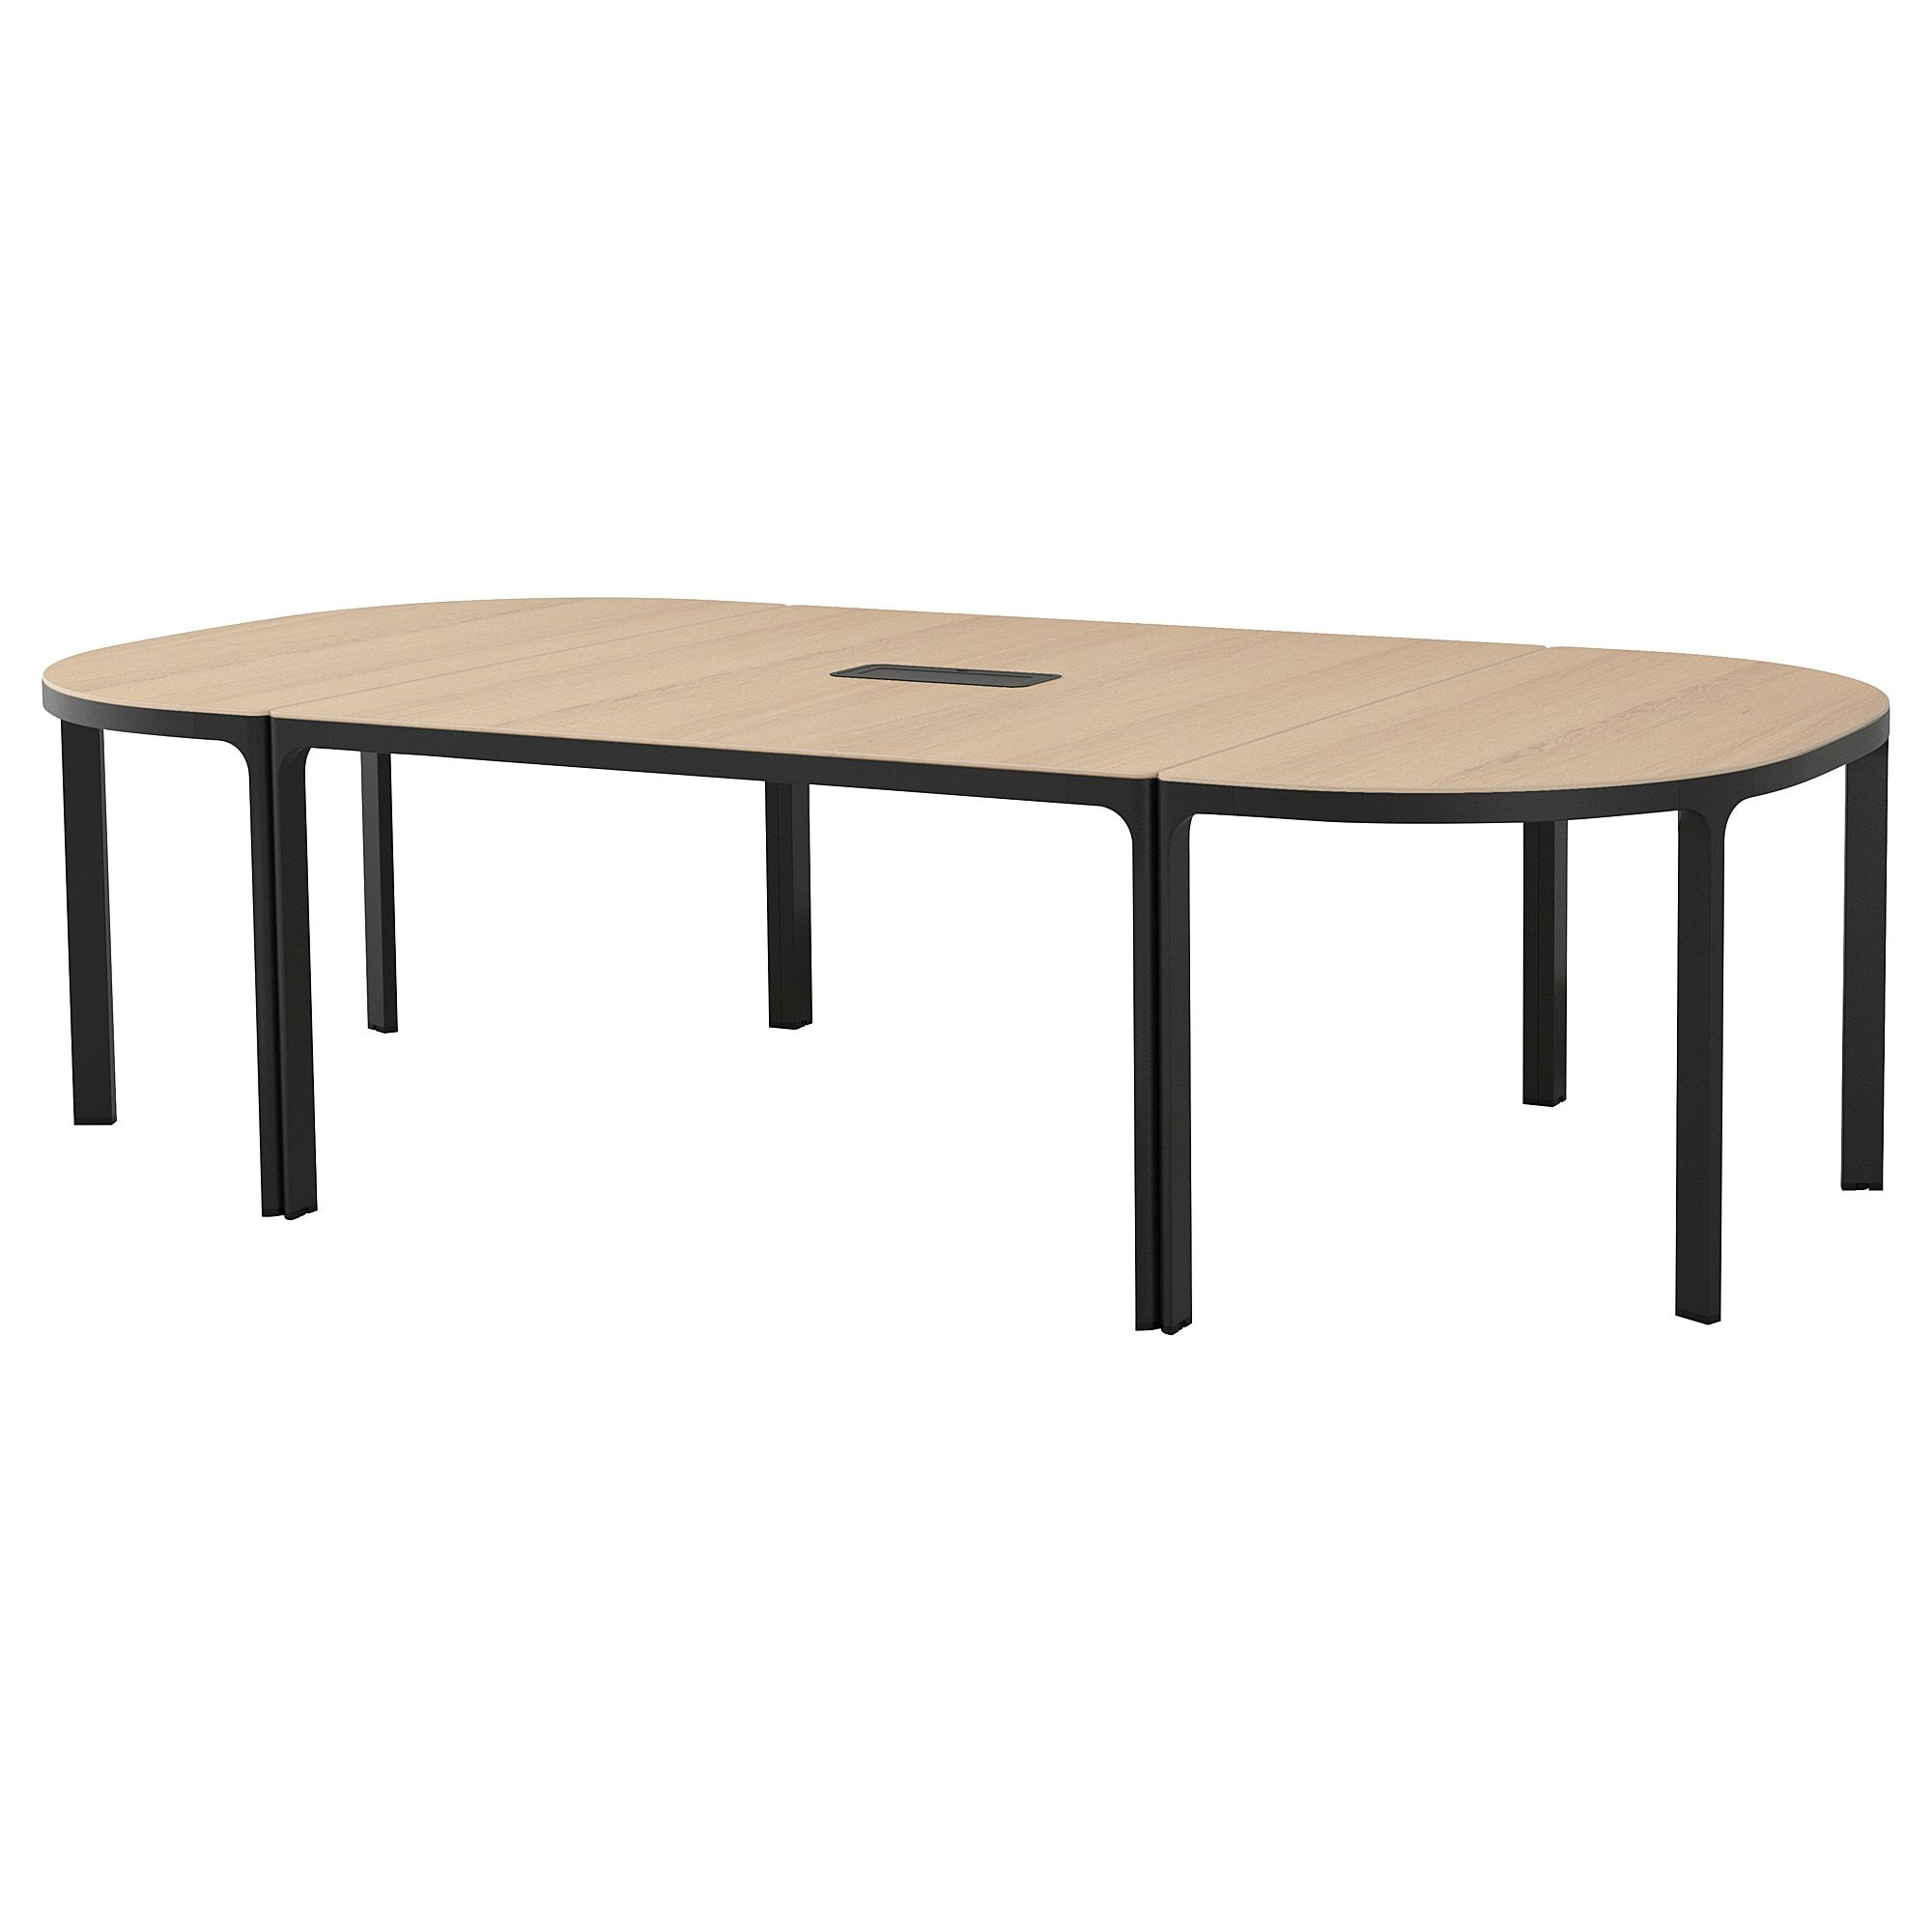 Ikea Bekant Conference Table White Stained Oak Veneer Black At Home Furniture Store Ikea Conference Table [ 2000 x 2000 Pixel ]